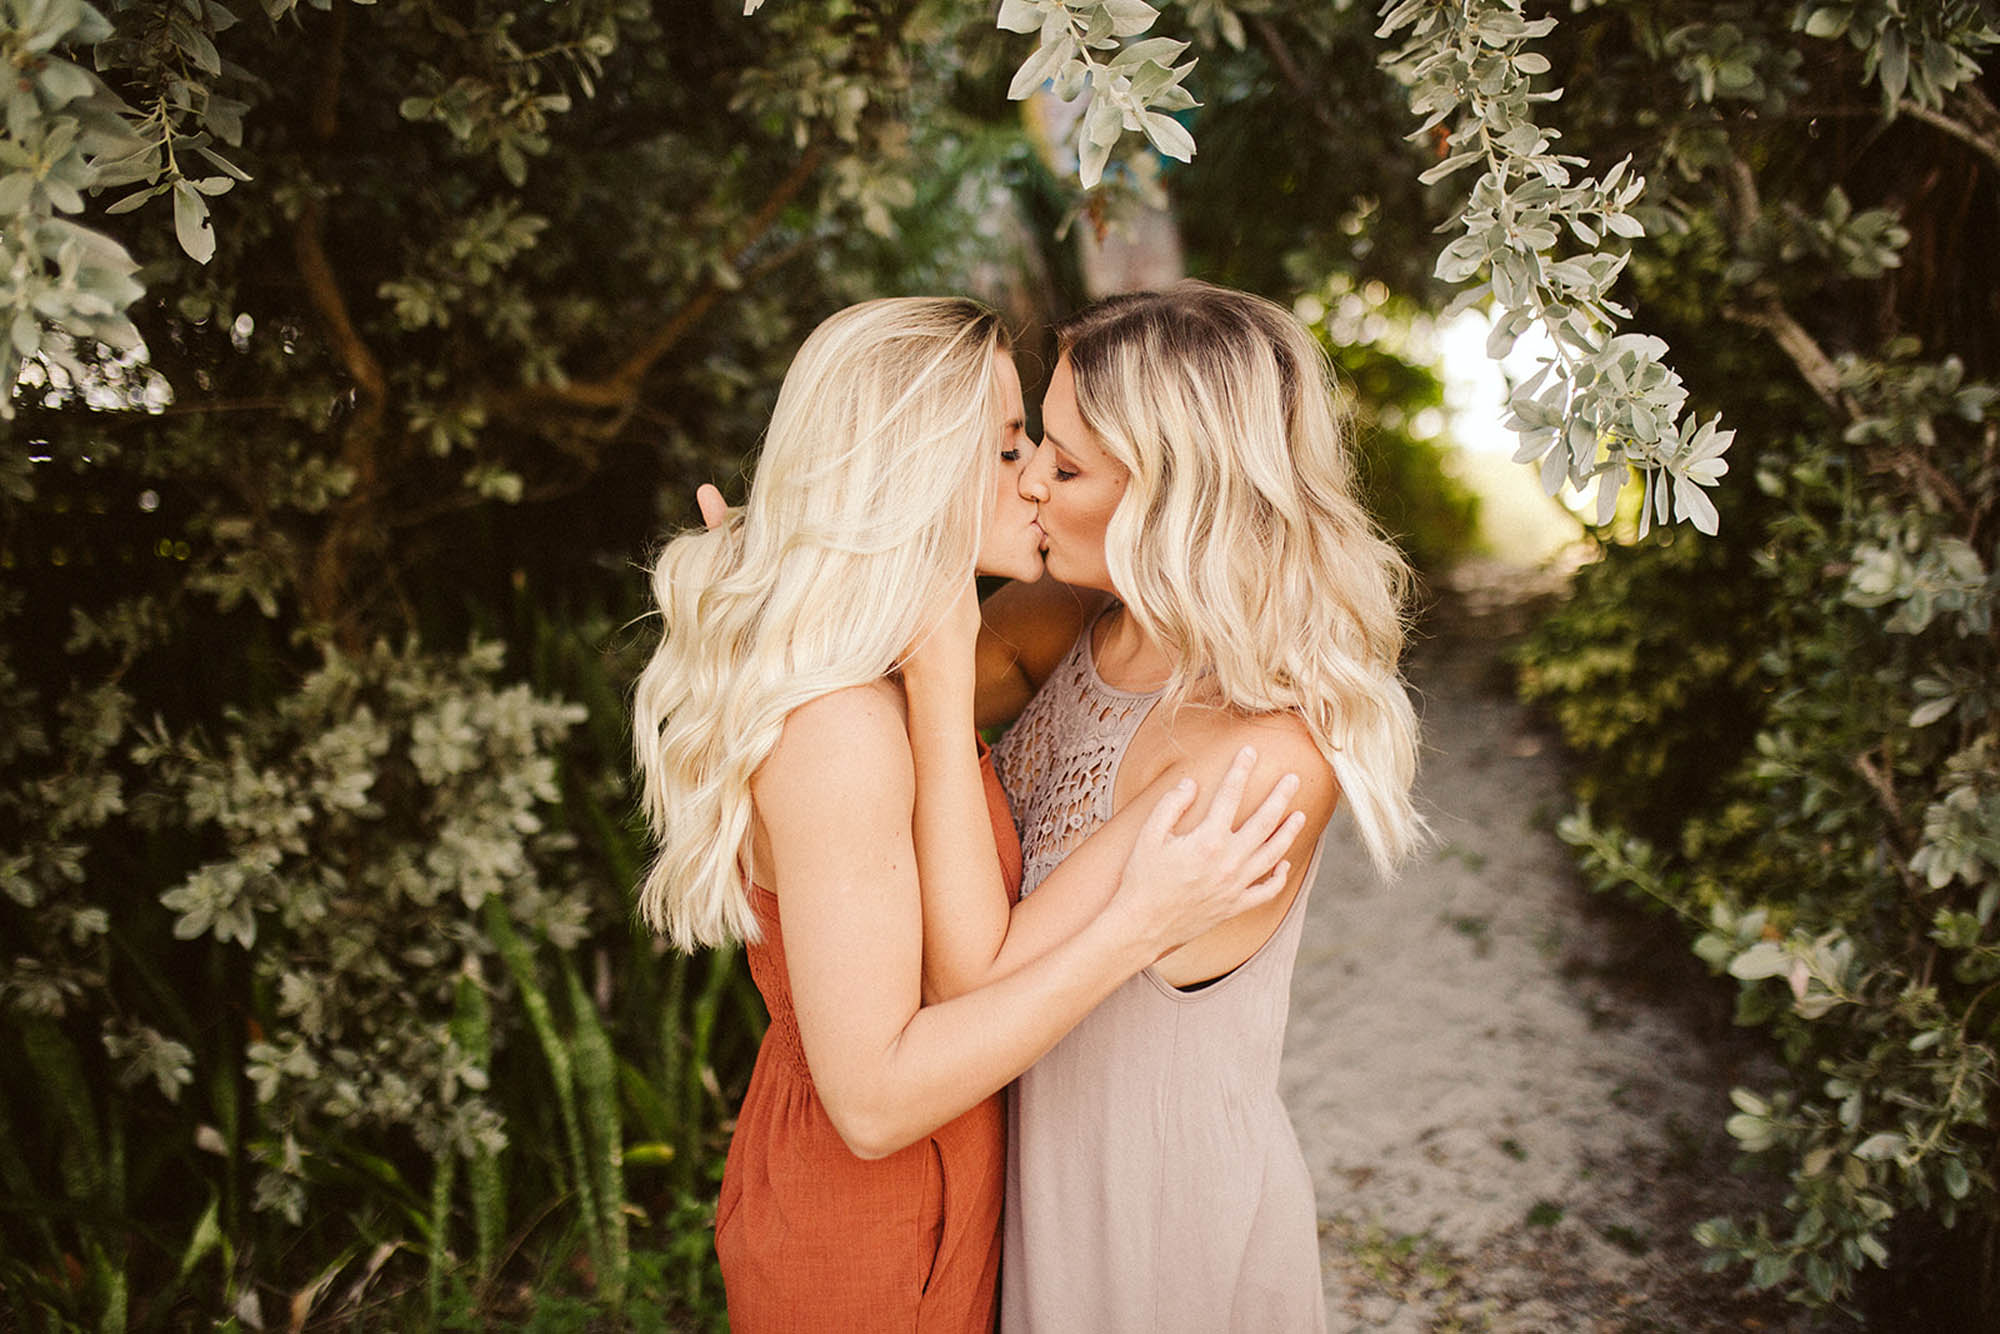 A Double Proposal and a Spontaneous Wedding - Lesbian Engagement - Dancing With Her